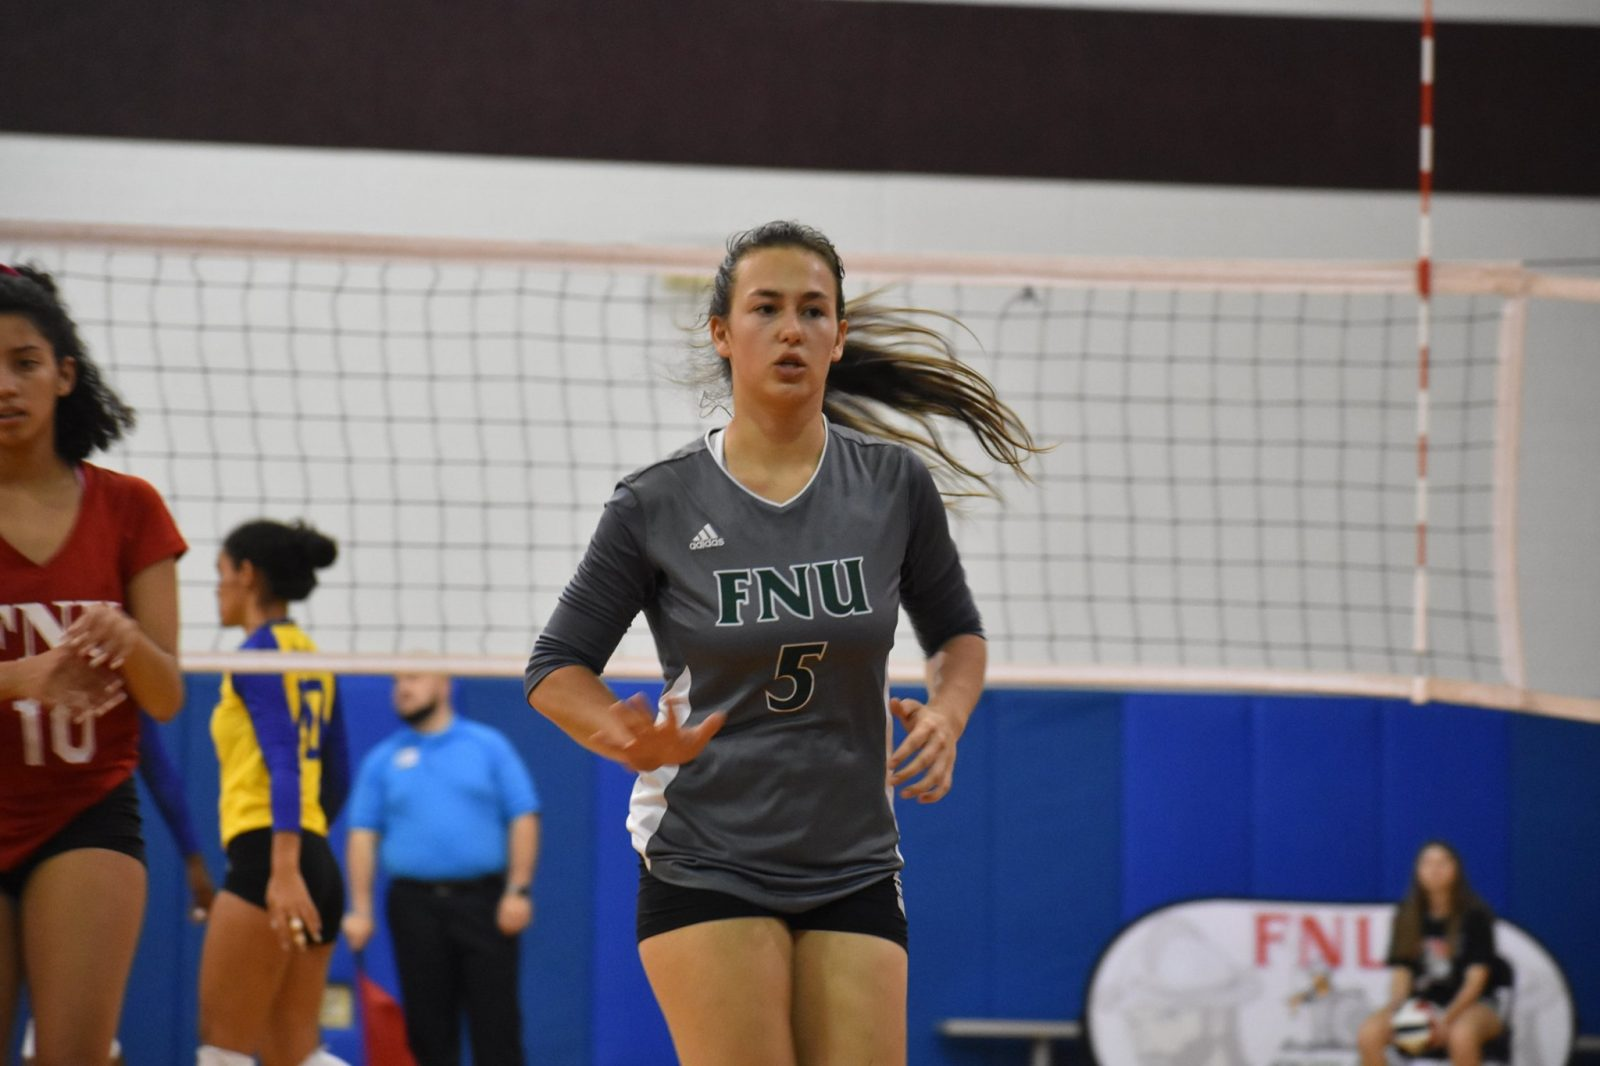 FNU Volleyball Player in the court celebrating